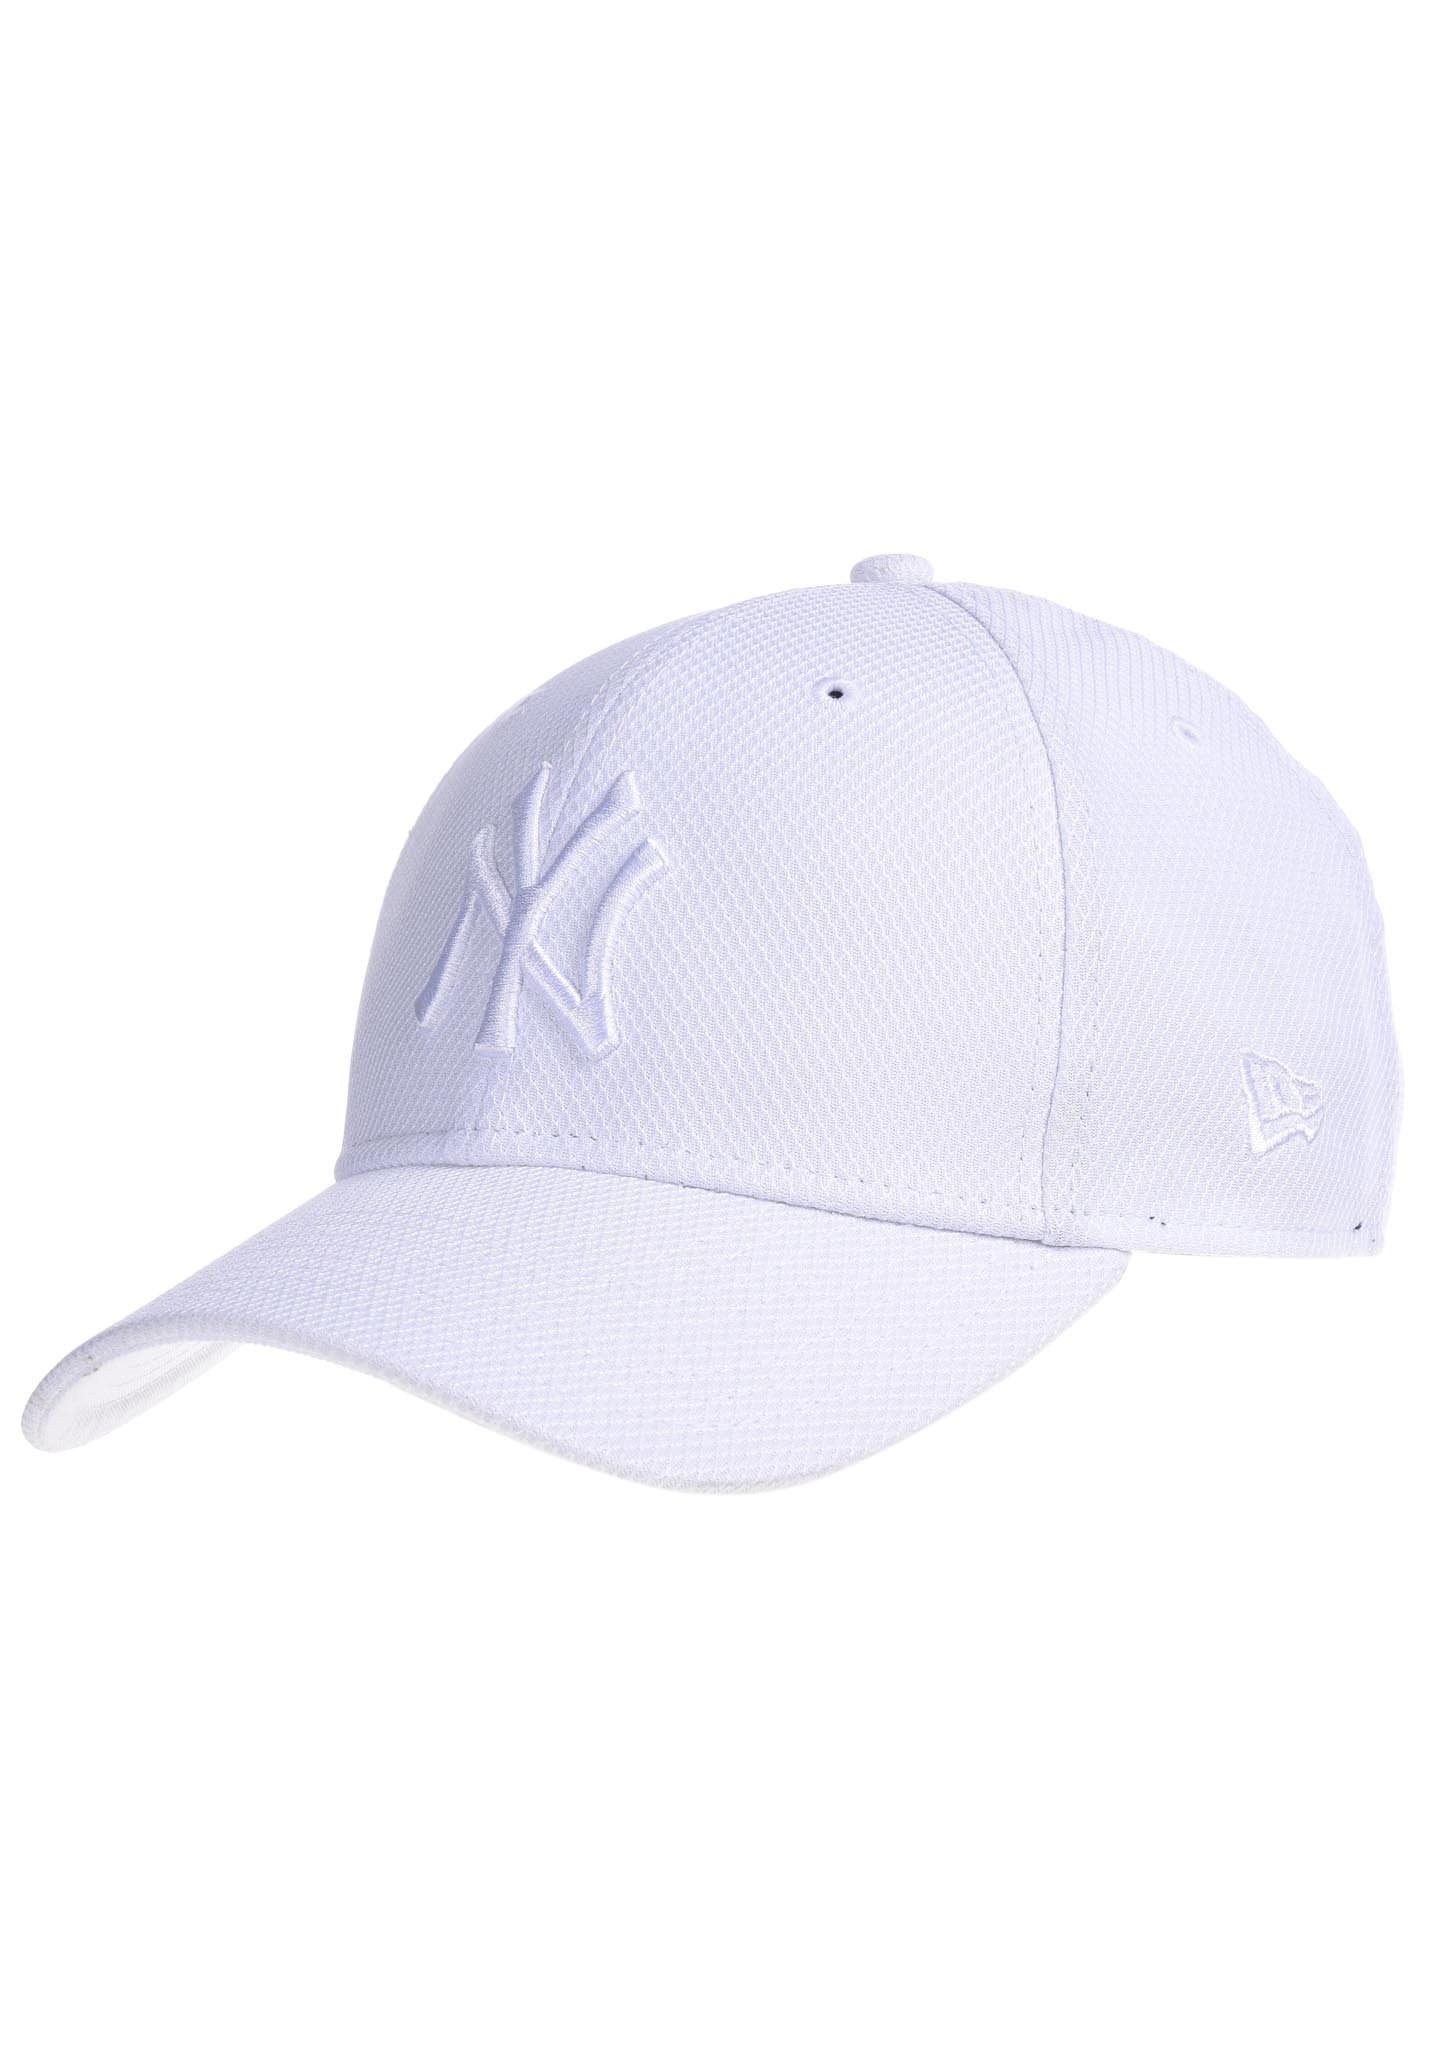 3fecd76bed487 NEW Era 9Forty Diamond New York Yankees - Cap - White - Planet Sports